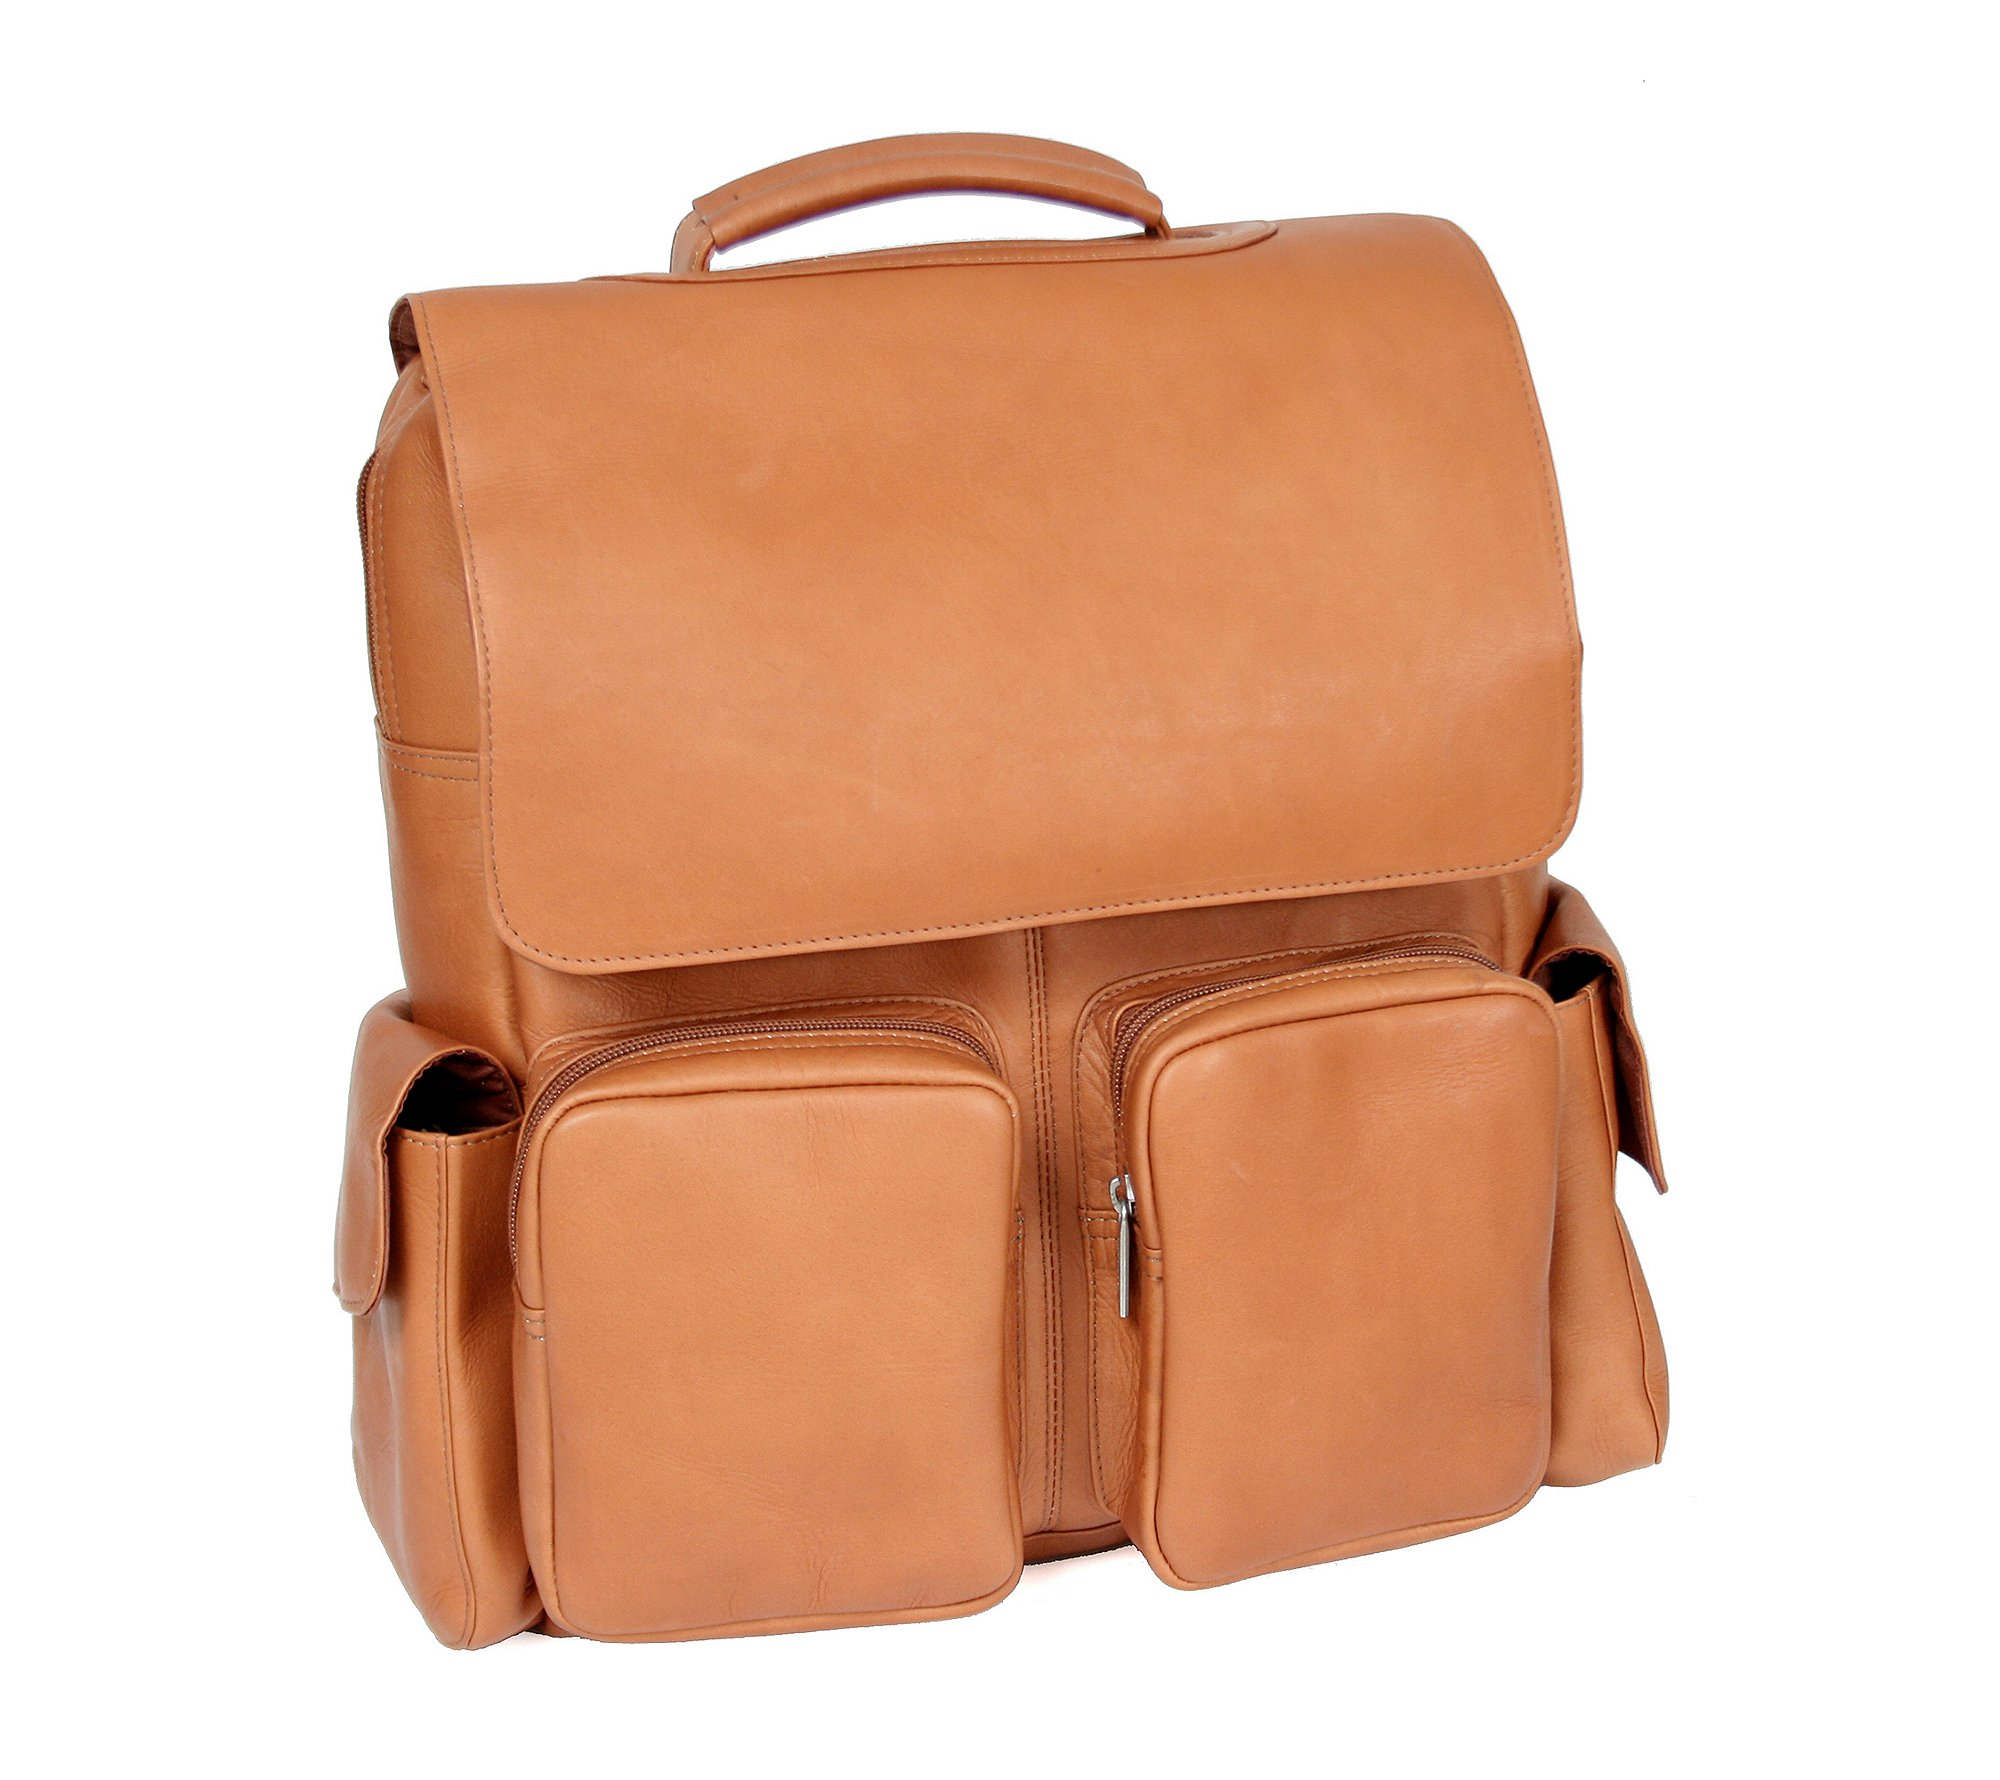 Royce Leather Vaquetta Leather Laptop Backpack Tan